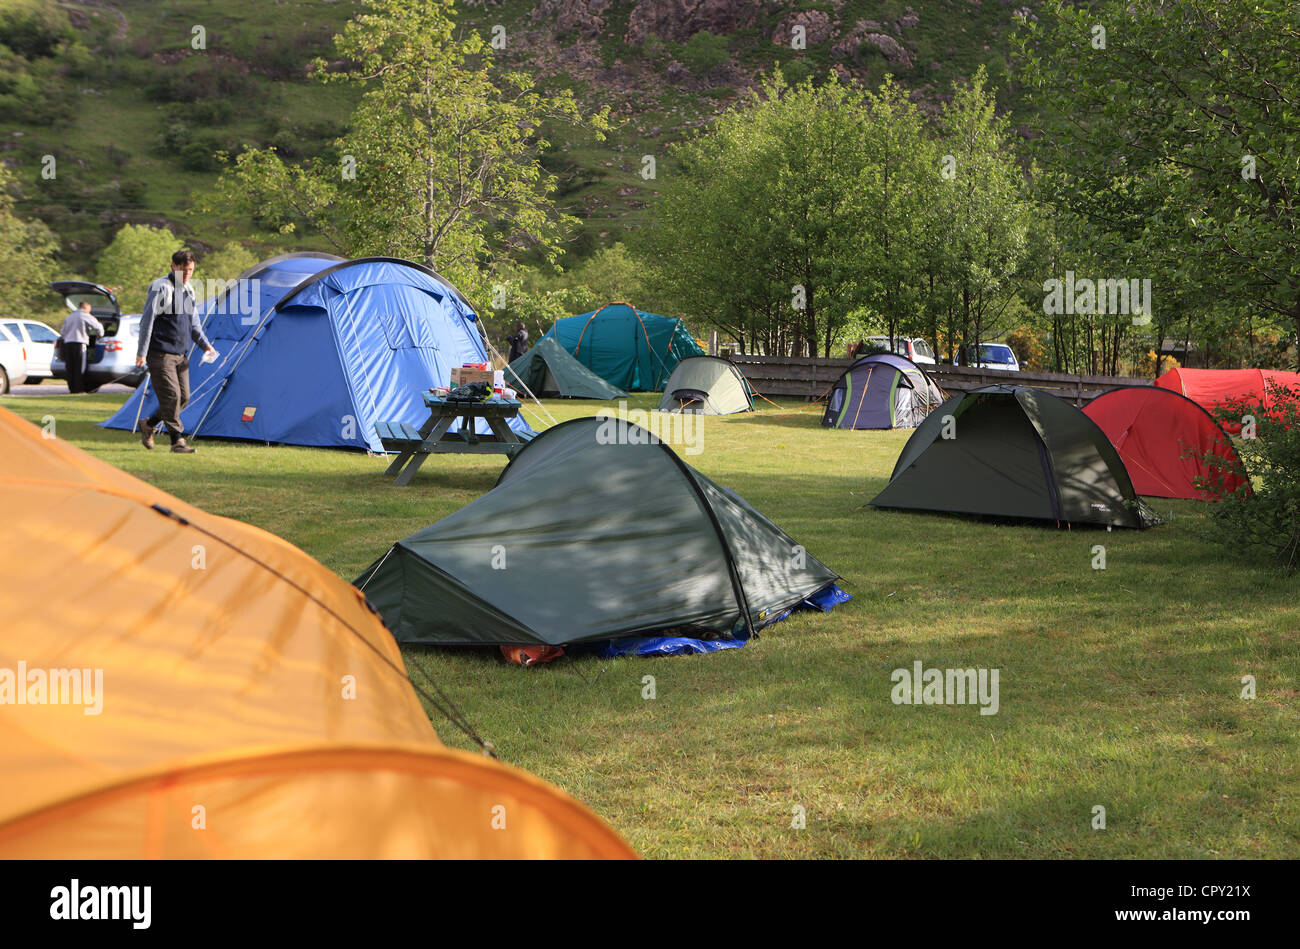 Tents at Shiel Bridge campsite in the Highlands of Scotland - Stock Image